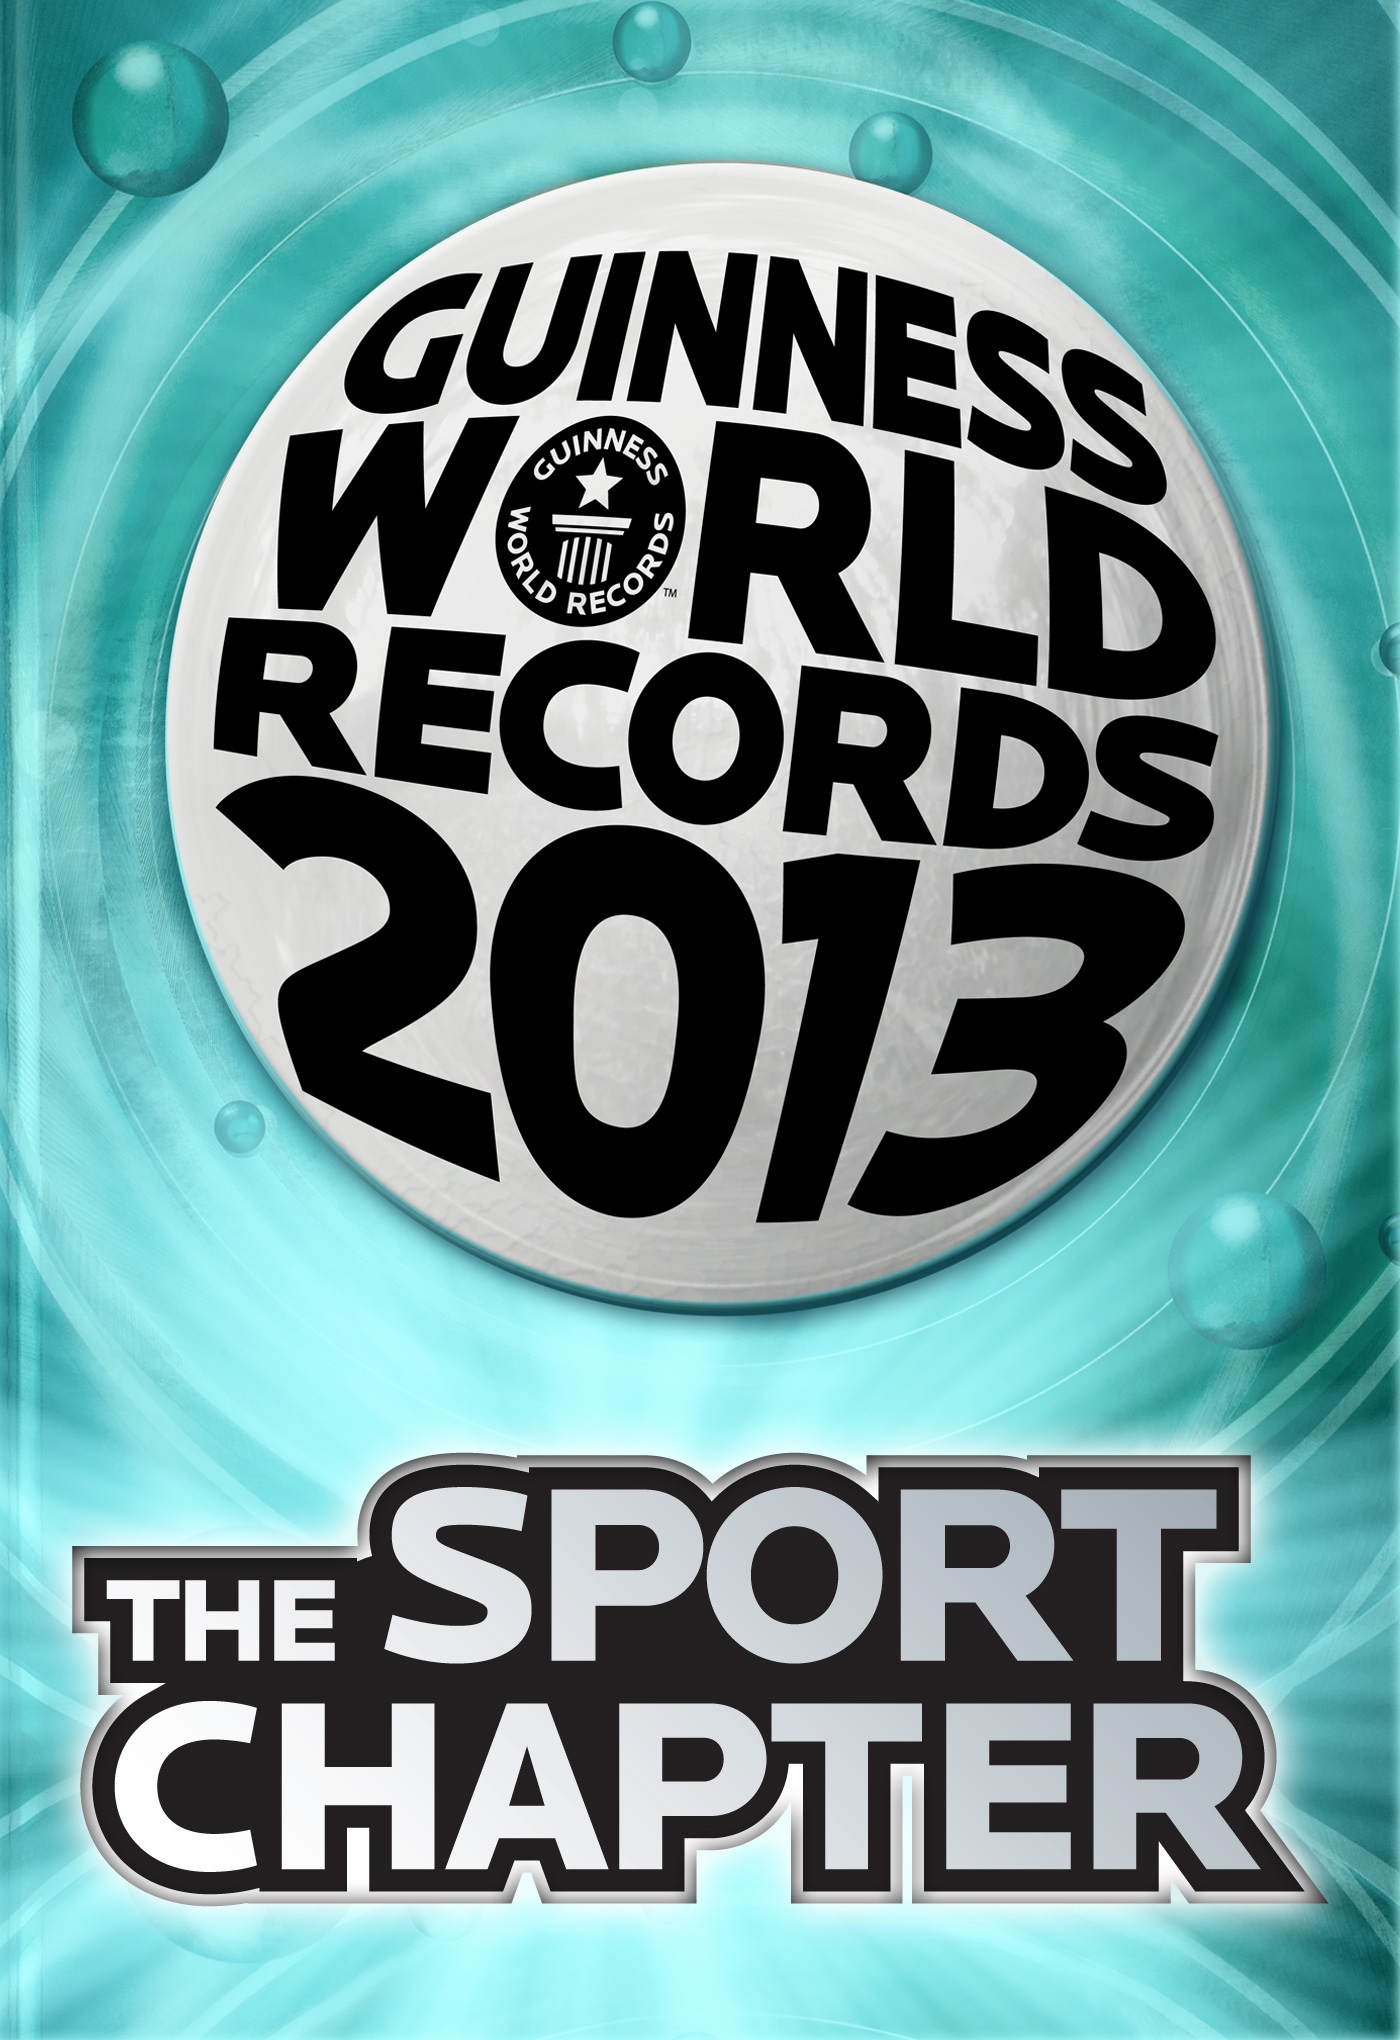 Guinness World Records 2013 - The Sport Chapter